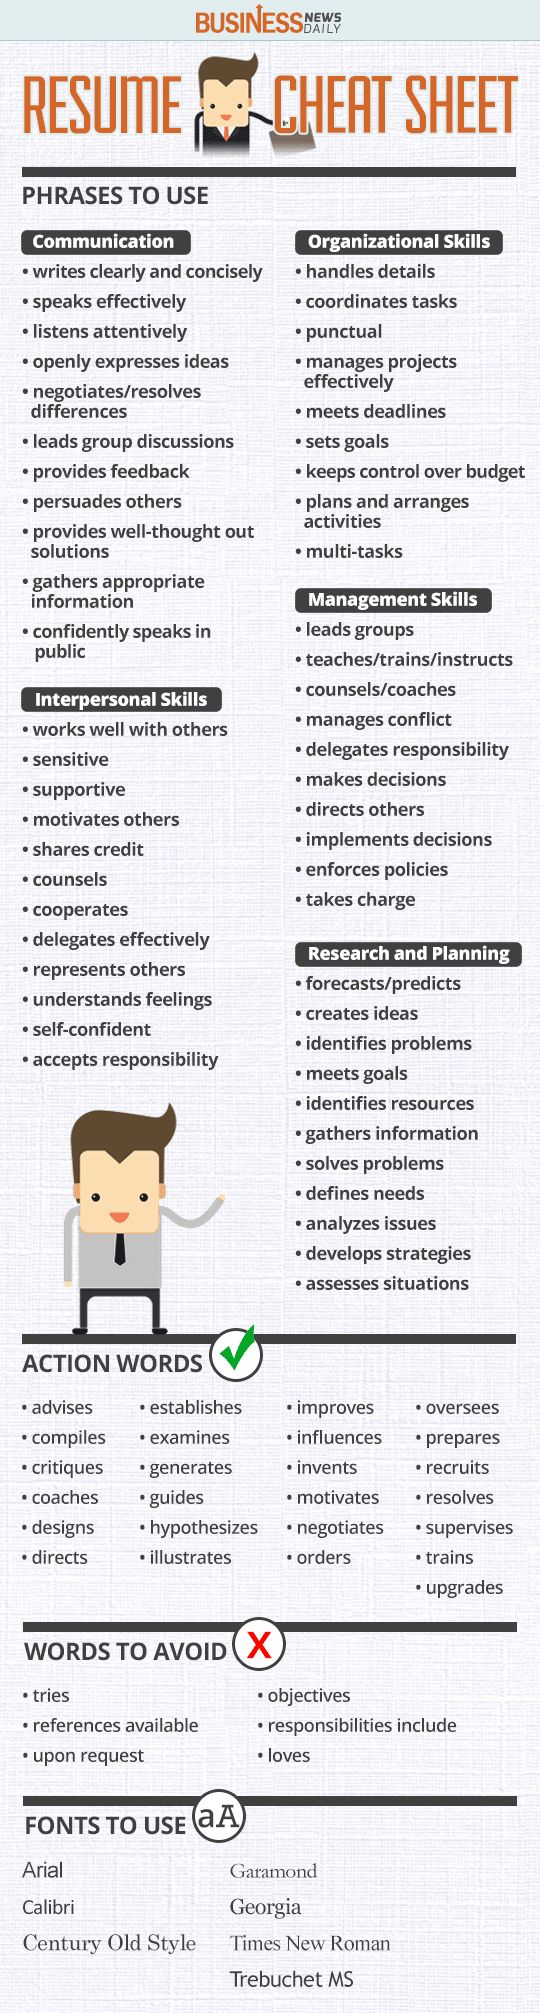 The Only Resume Cheat Sheet You Will Ever Need - By David Mielach #Bussiness #Tips